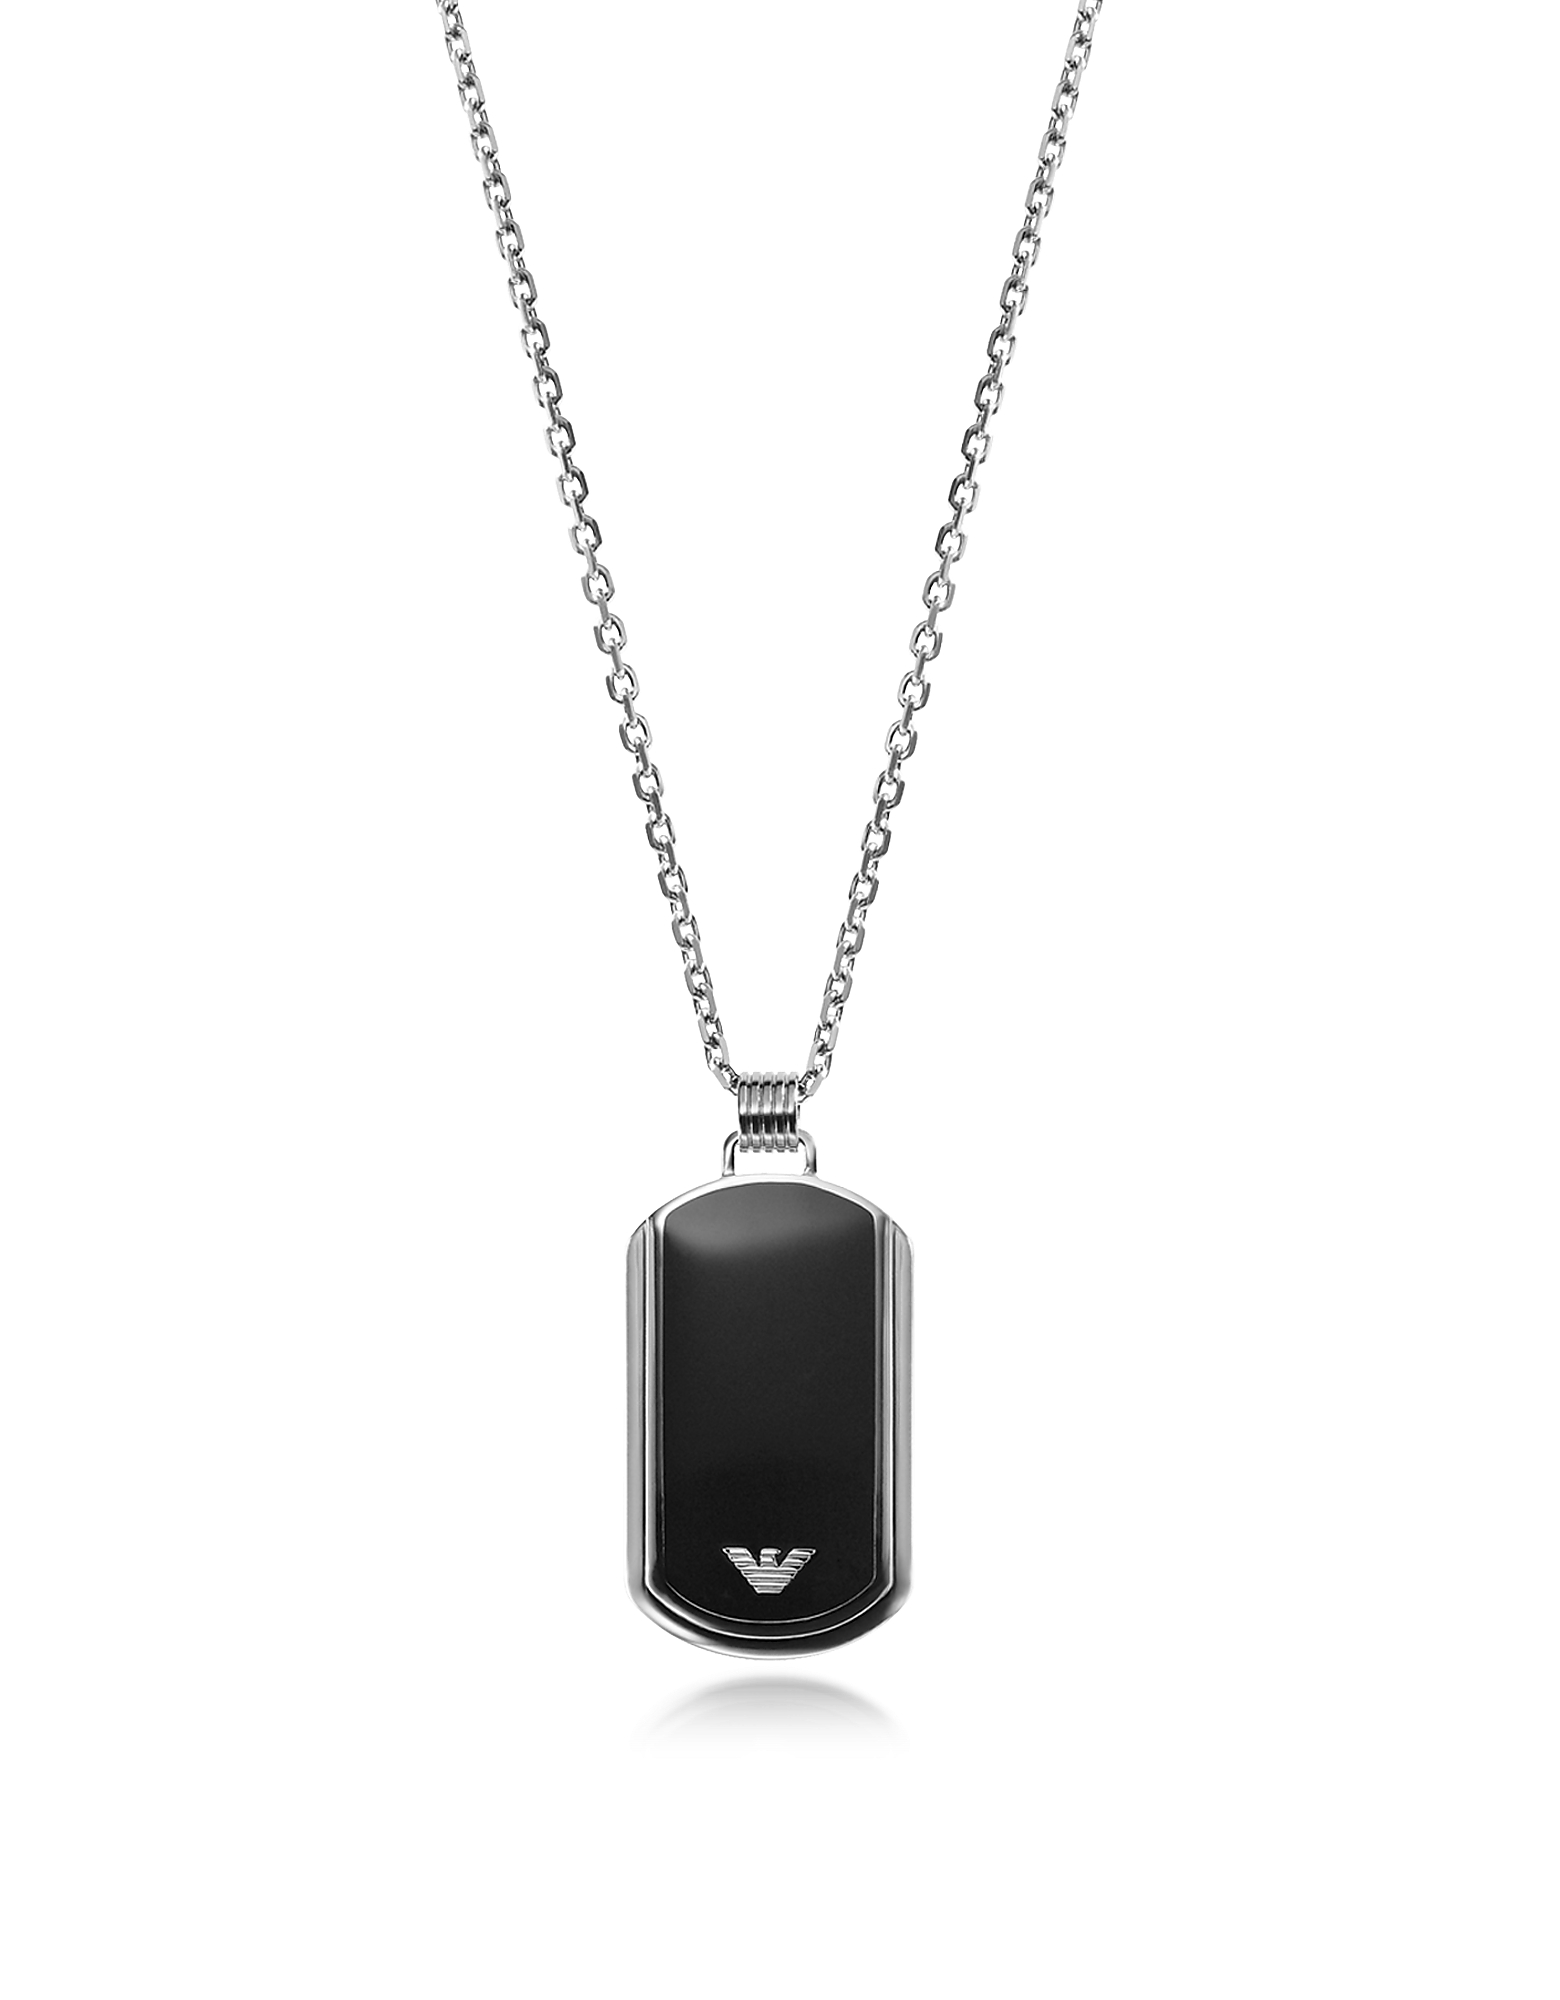 Iconic Stainless Steel w/Black Enamel Charm